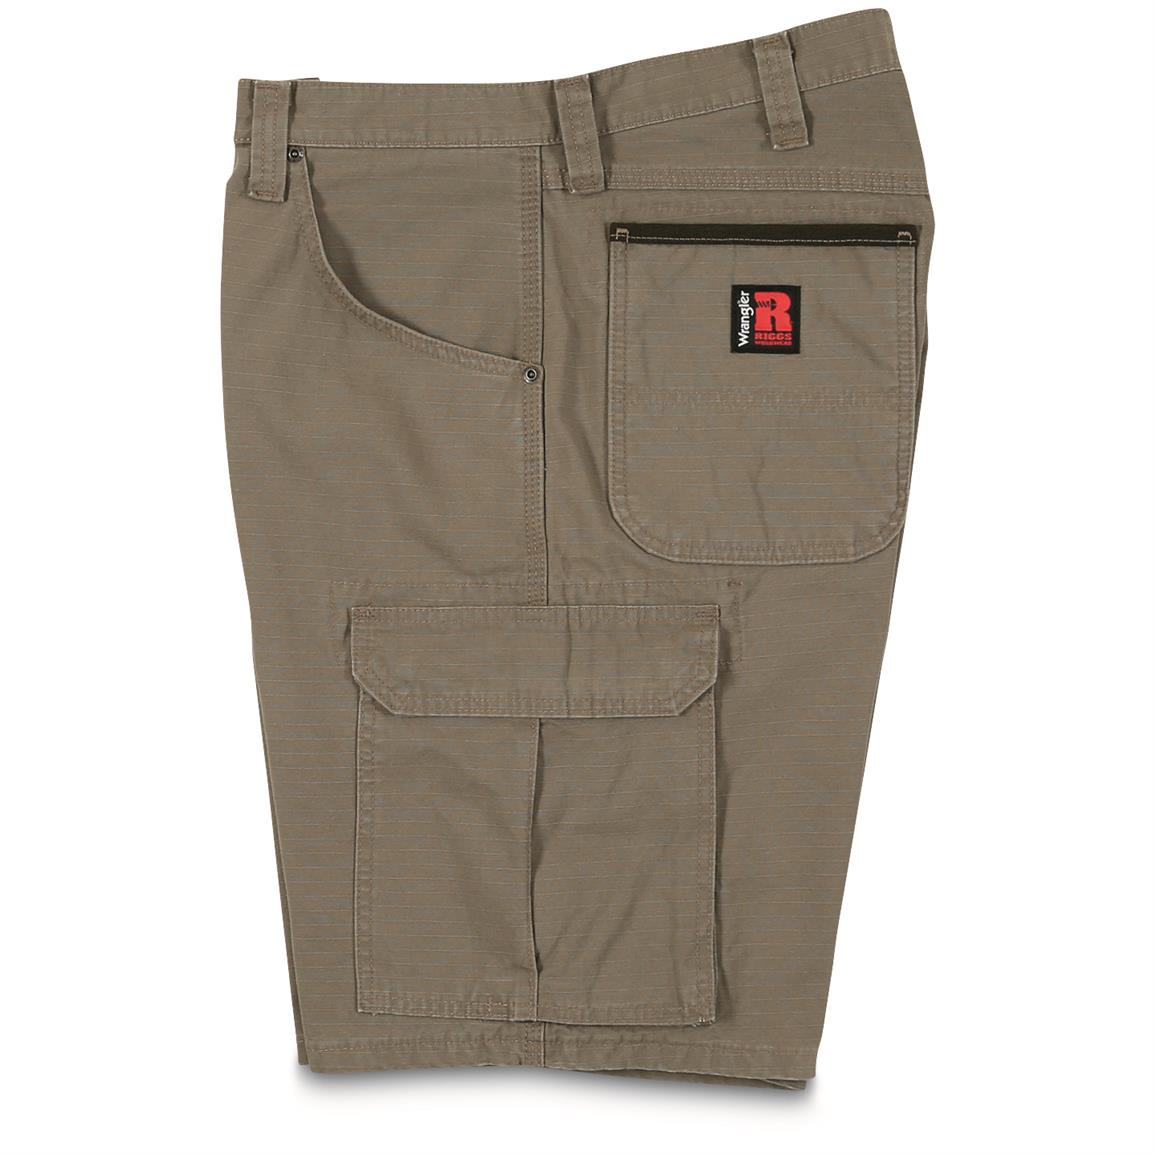 Roomy side cargo pockets with flaps and concealed snaps